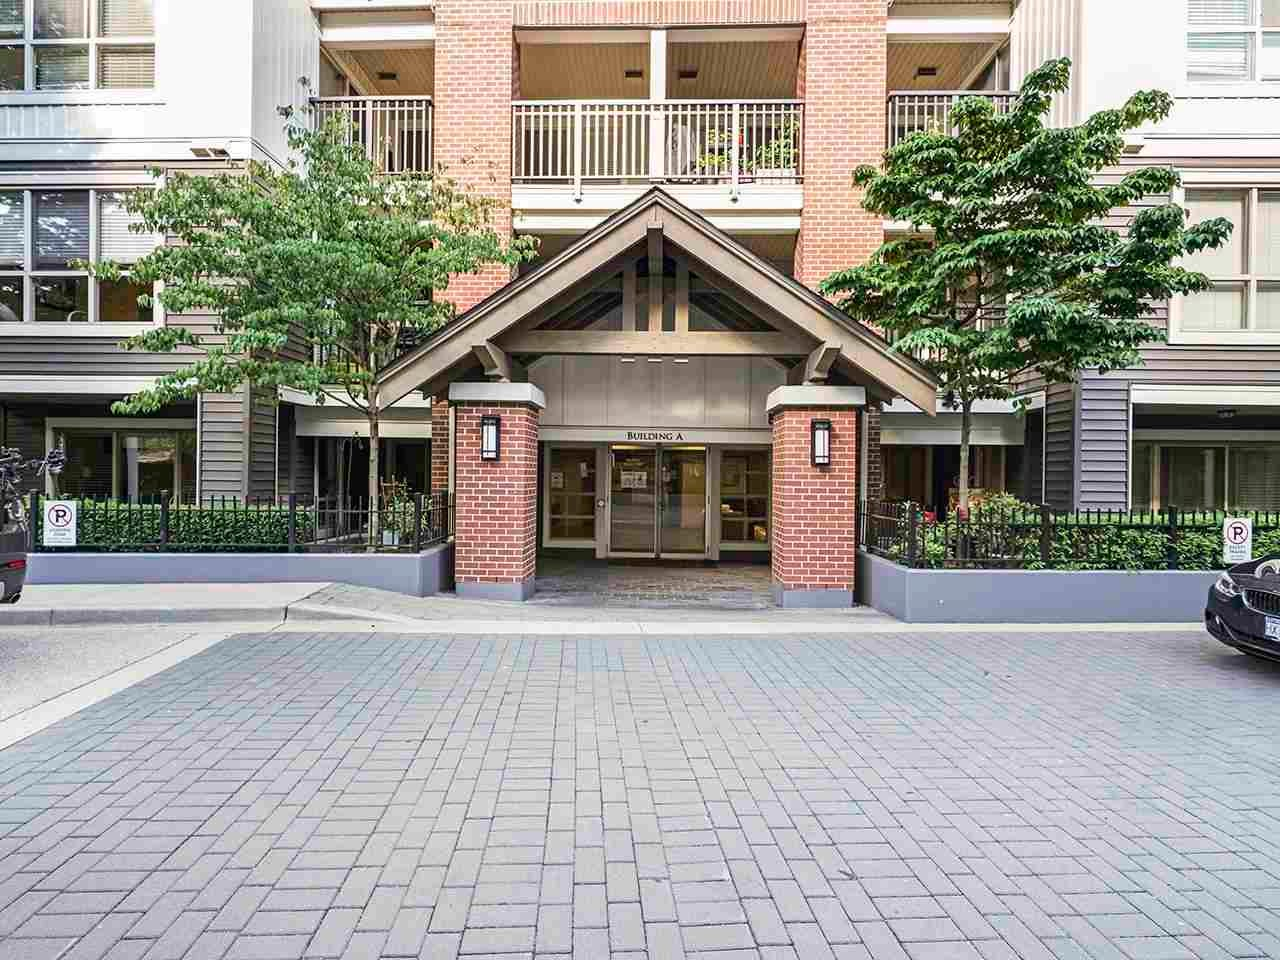 A203 8929 202 STREET - Walnut Grove Apartment/Condo for sale, 2 Bedrooms (R2593357) - #1